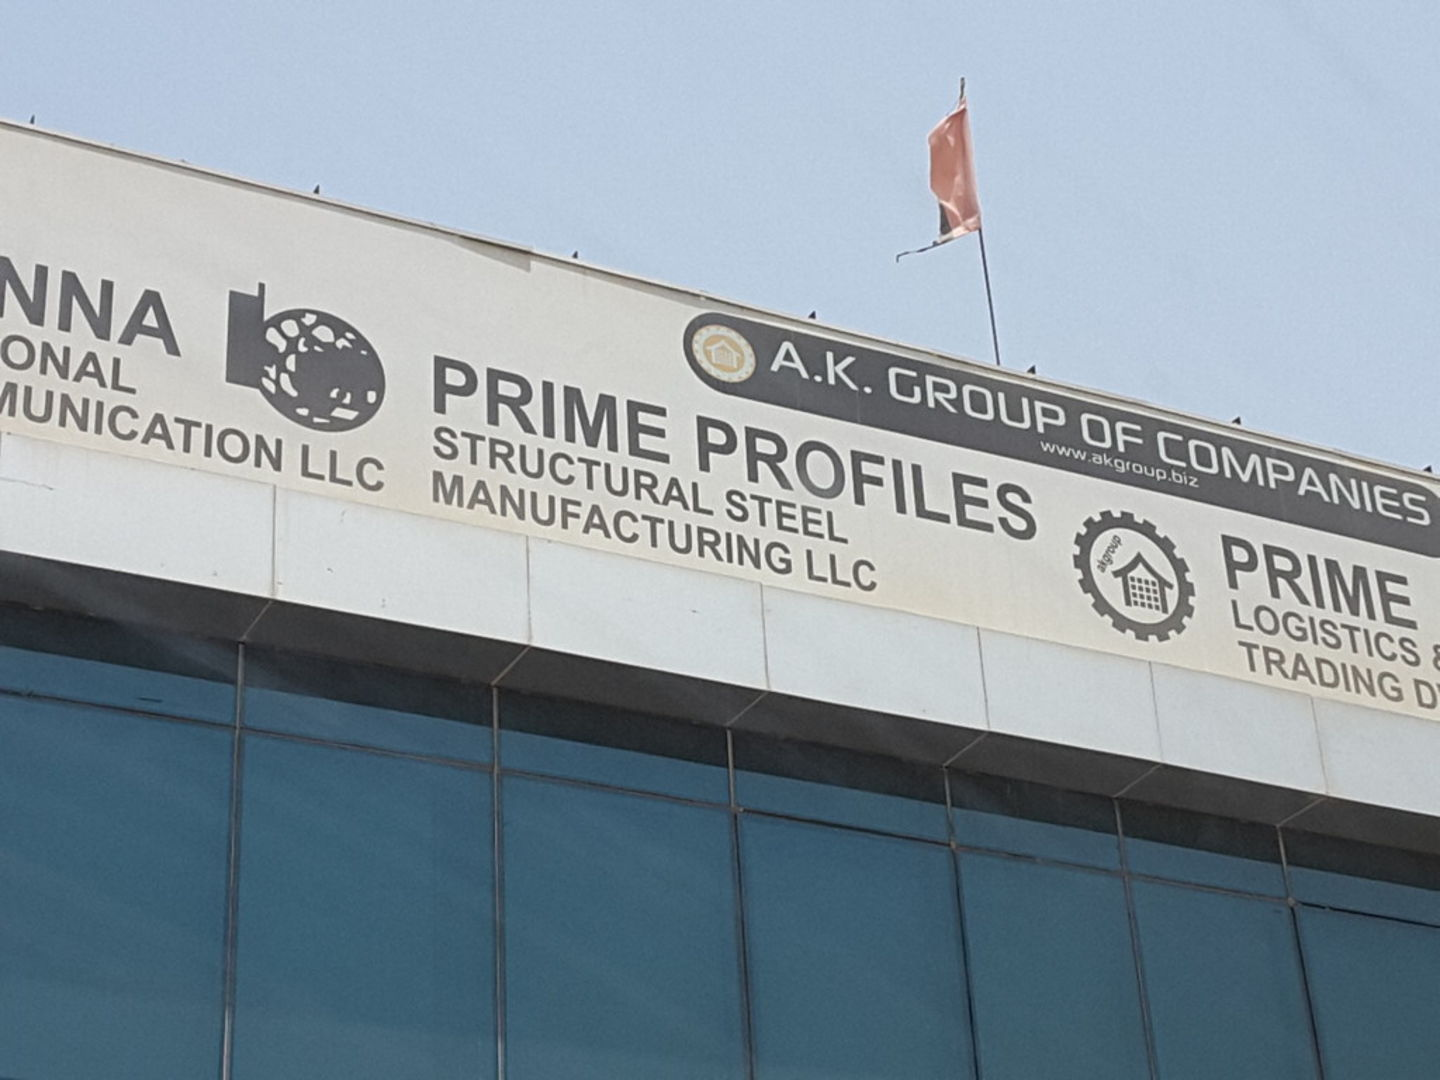 Prime Profiles Structural Steel Manufacturing, (Chemical & Metal